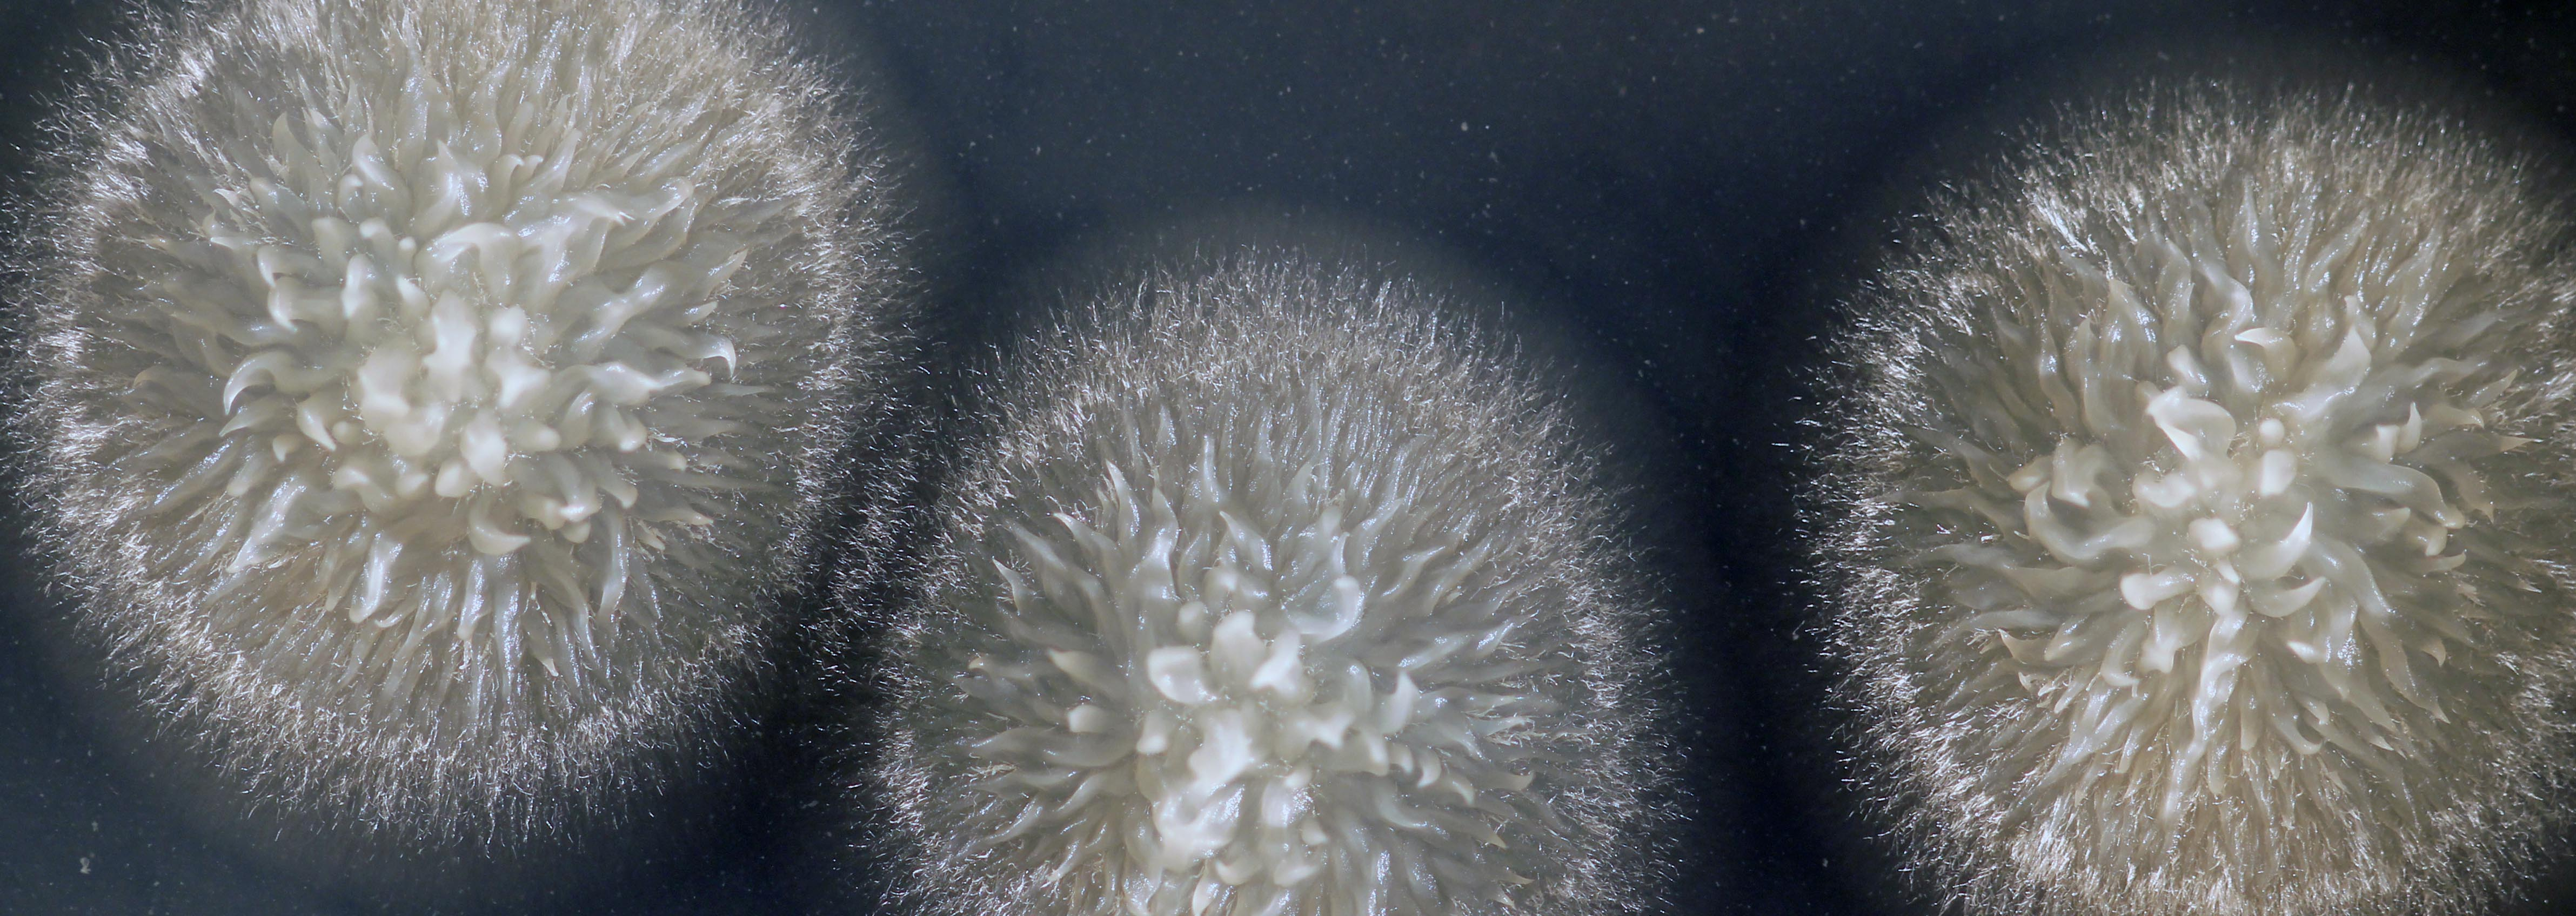 Geotrichum candidum: A yeast holding on to its moldy past